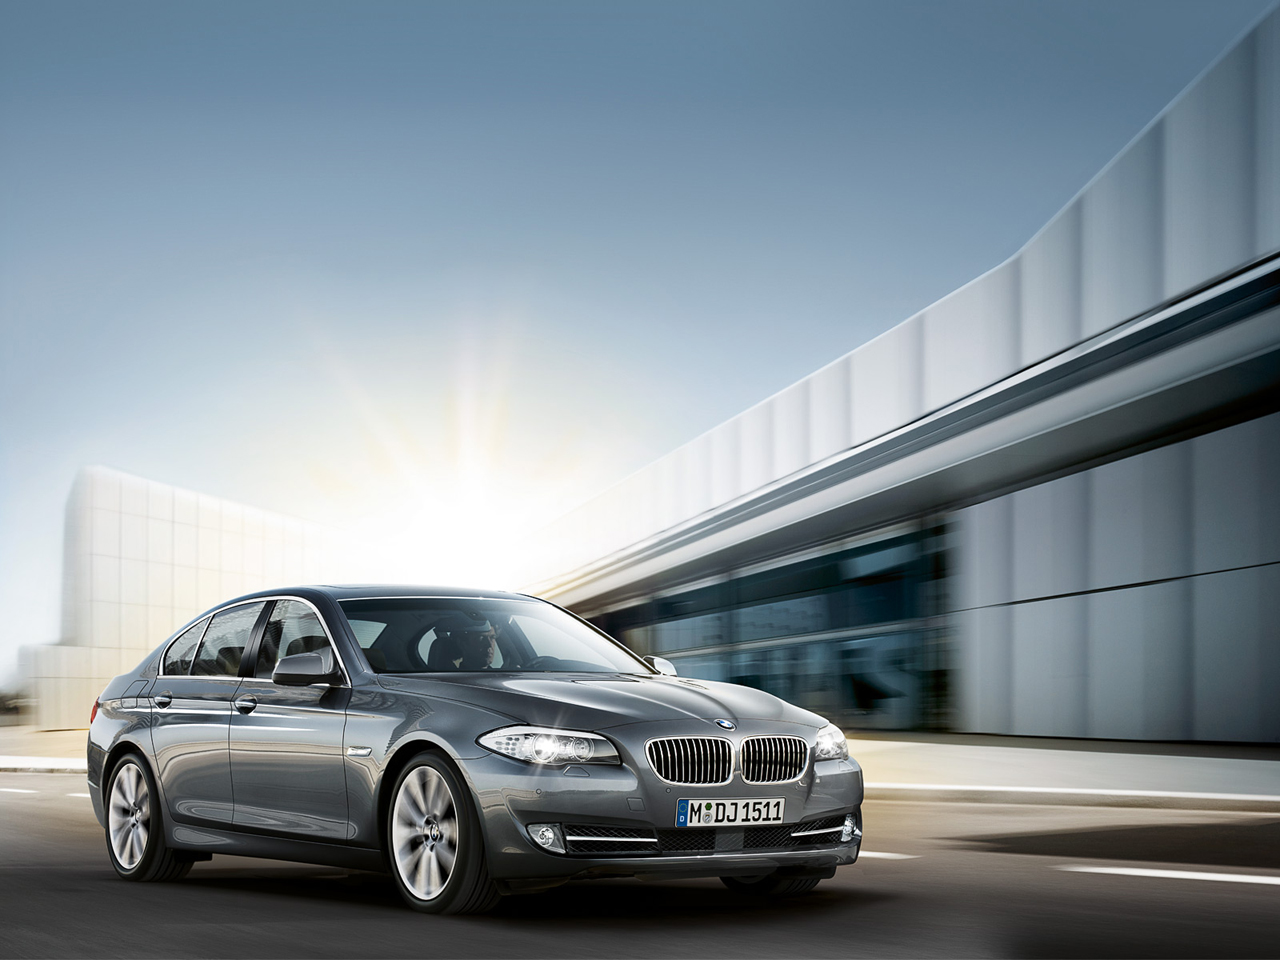 2011 bmw 5 series sedan wallpaper